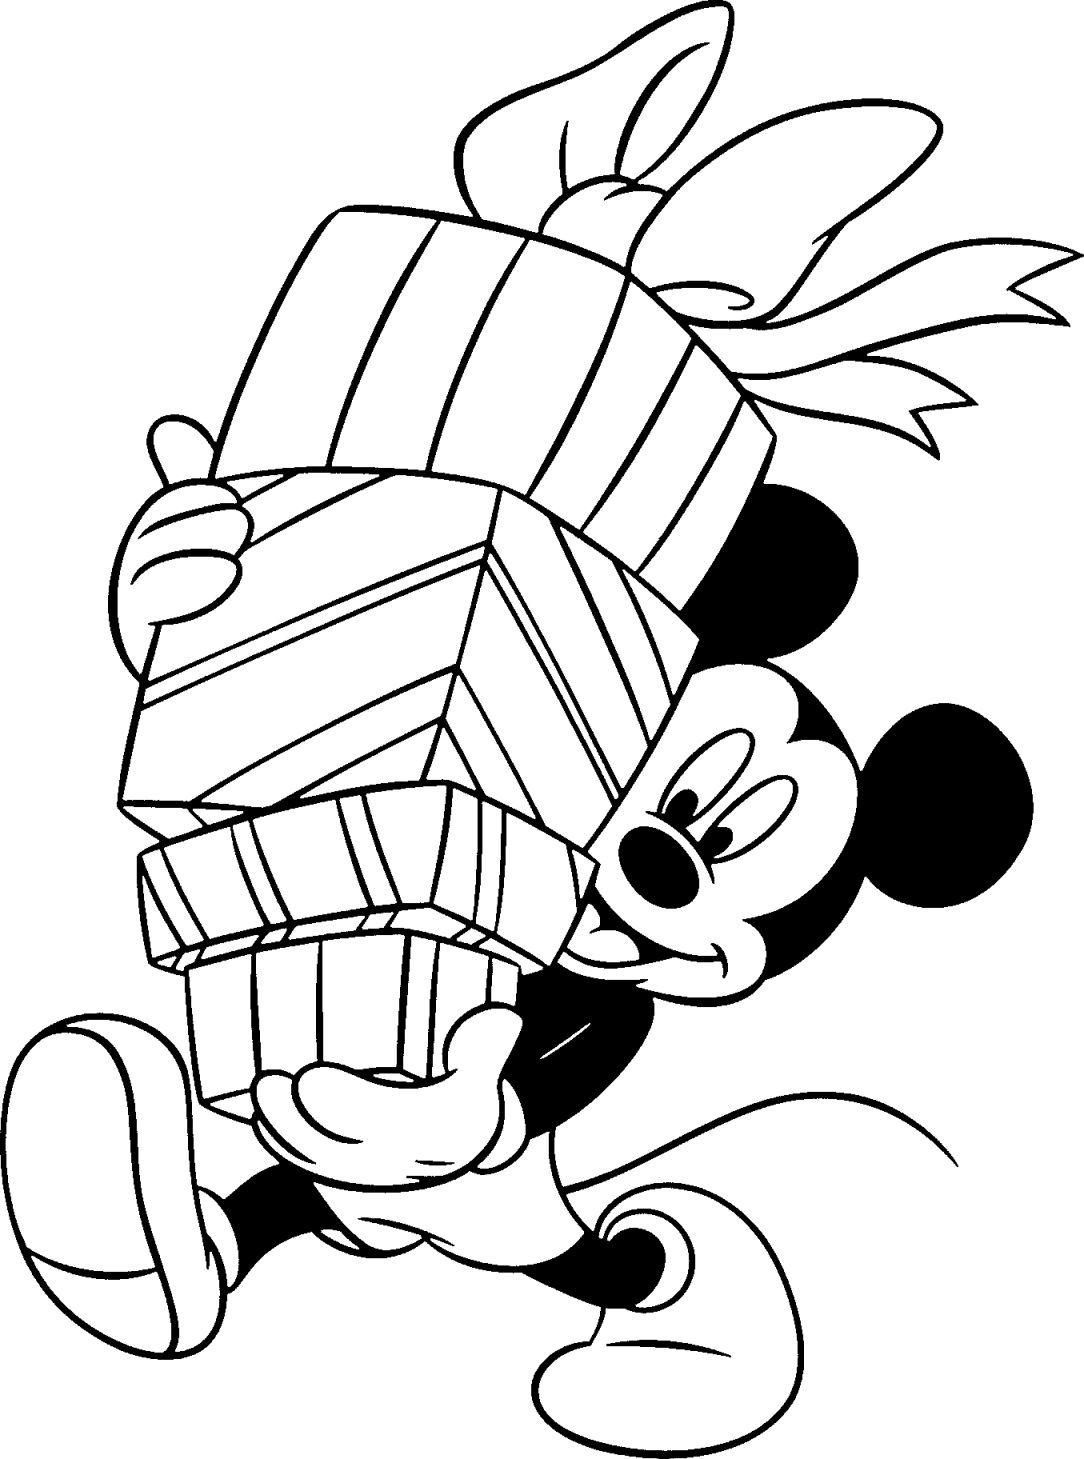 disney christmas coloring pages mickey mouse holding gifts